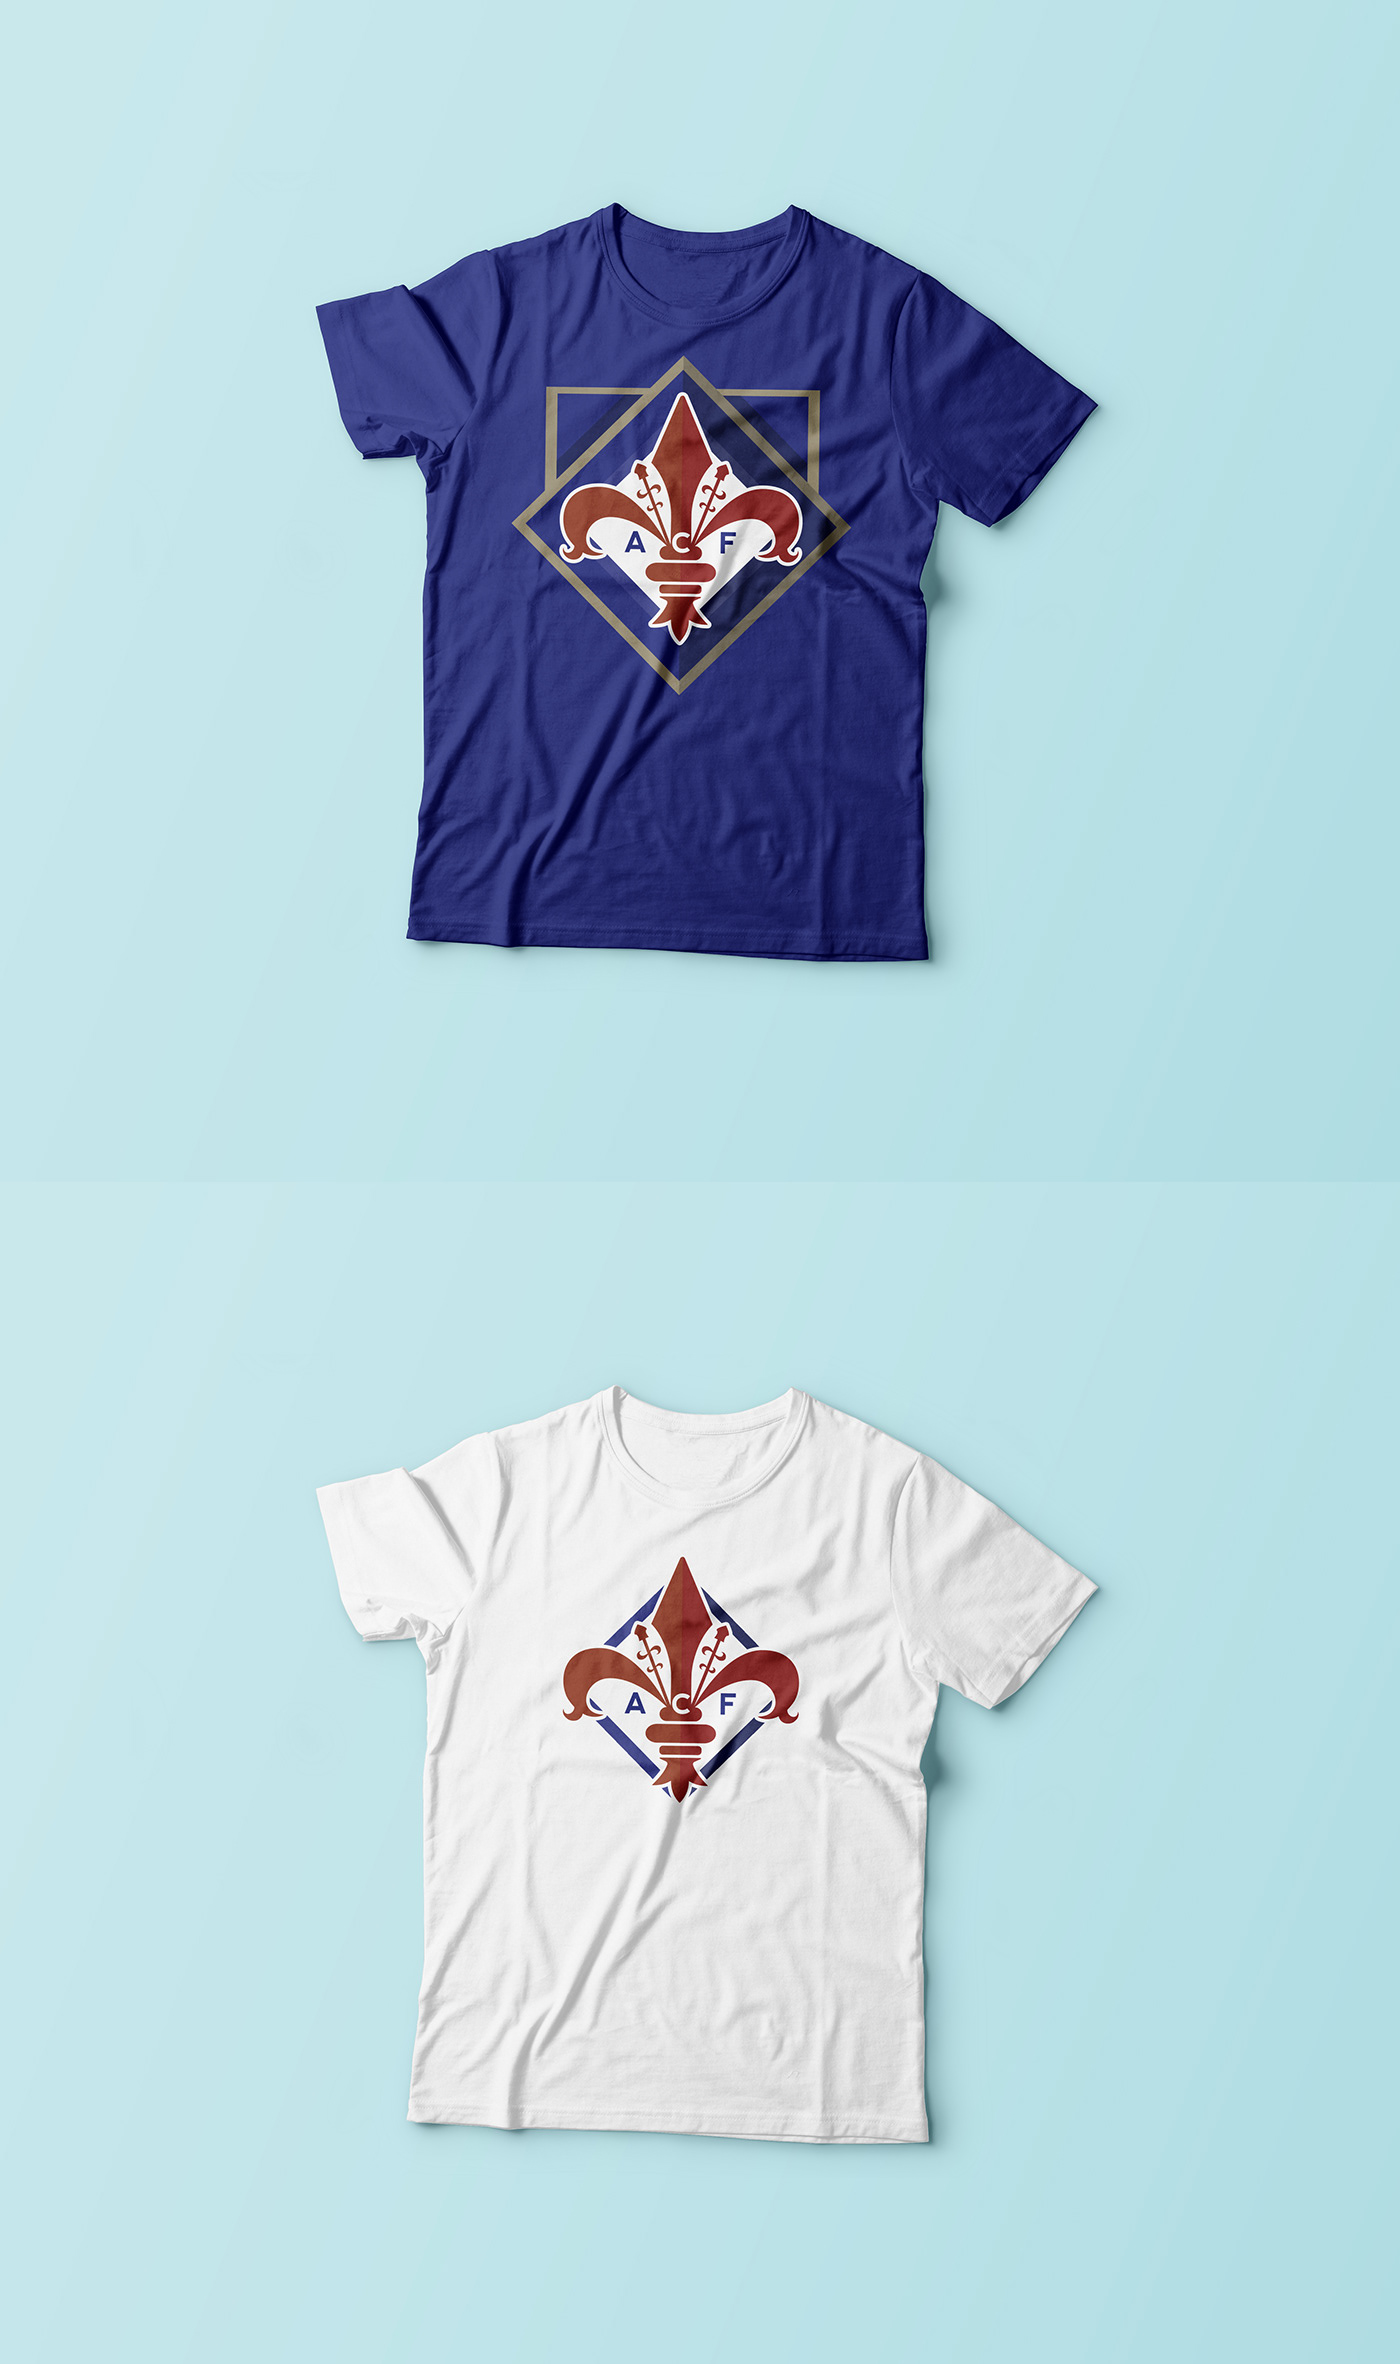 ACF Fiorentina - Rebrand Concept on Behance 93f3a76be